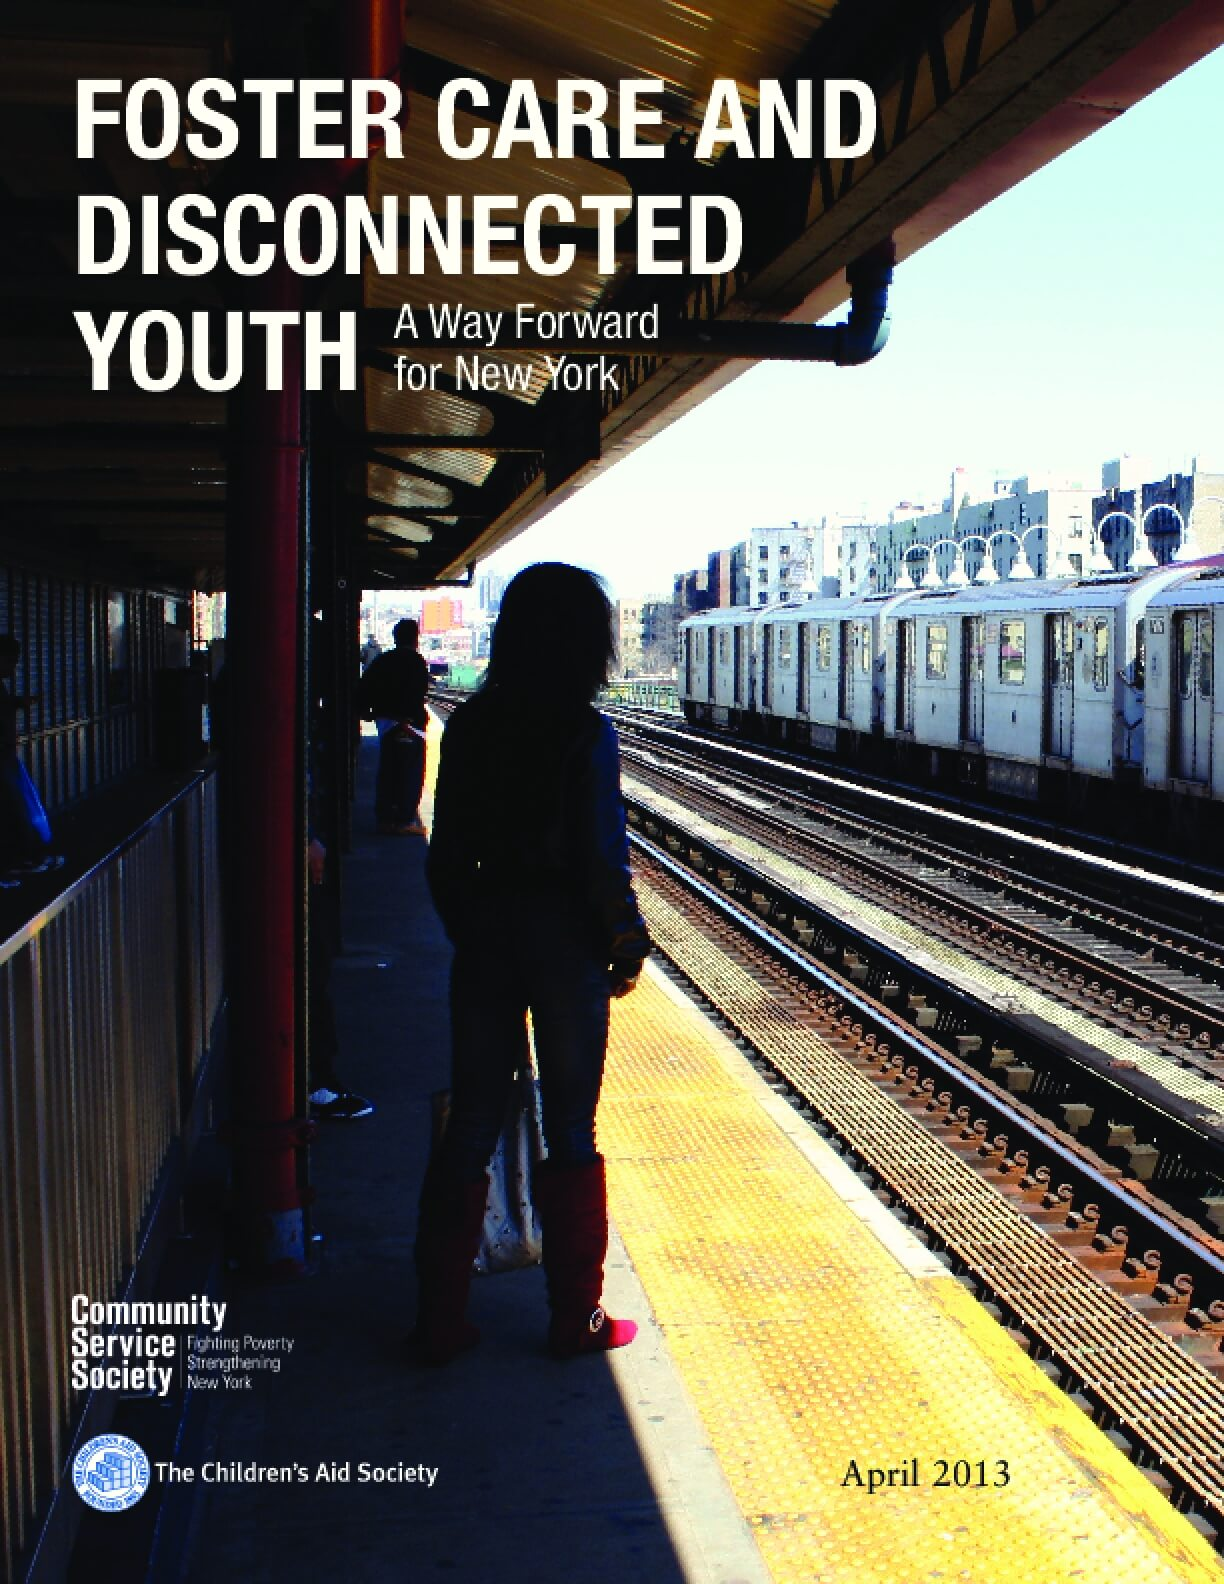 Foster Care and Disconnected Youth: A Way Forward for New York